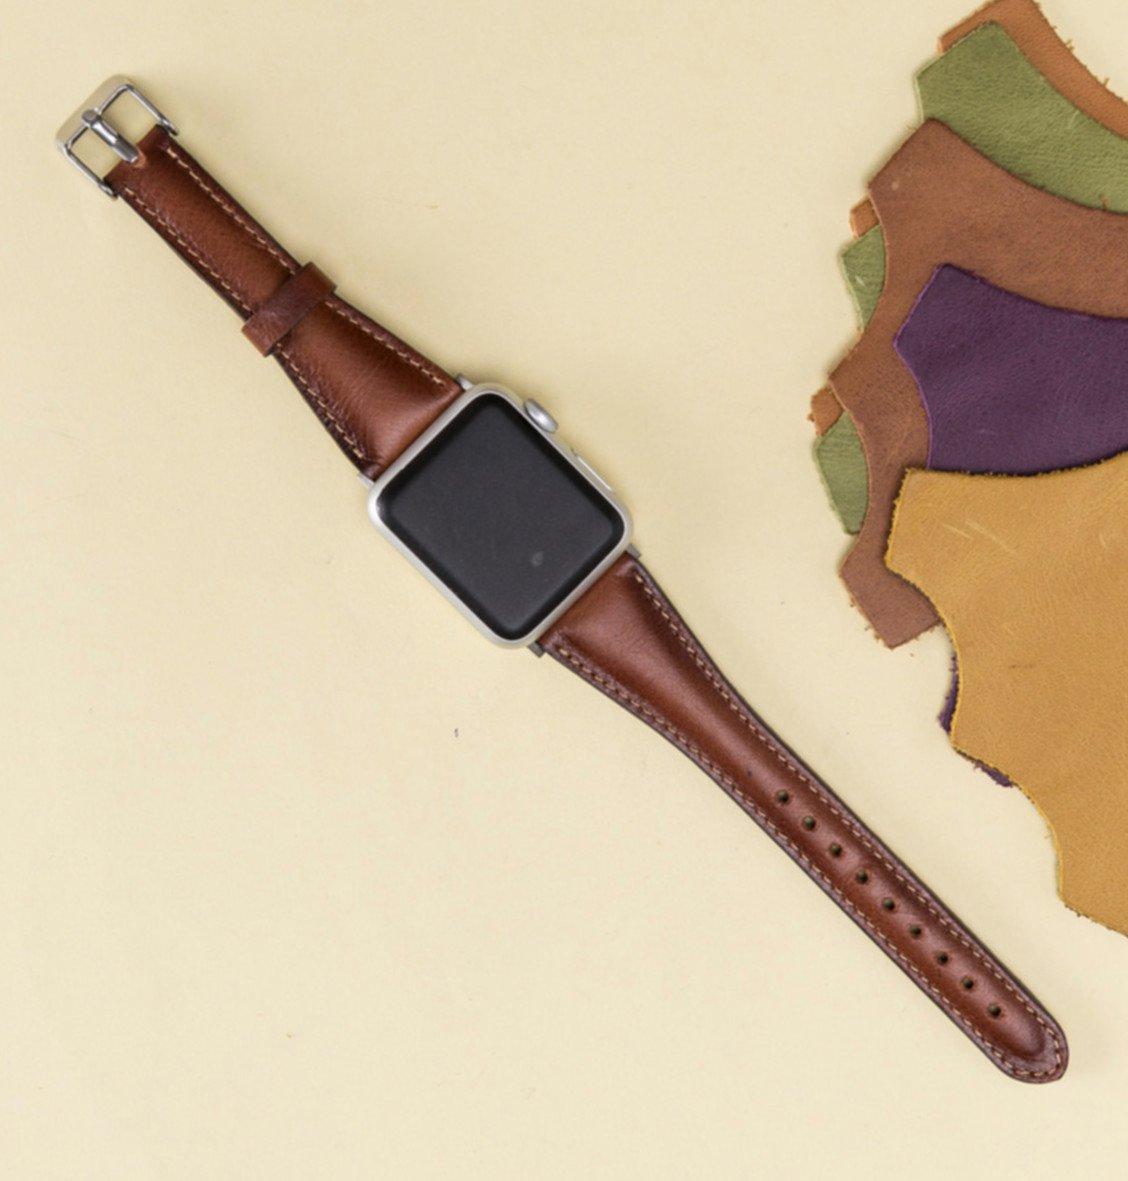 Apple Watch Band for Women, 38mm, 42mm, Brown iWatch Leather Band, Thin Feninine Aplle Watch Band, Genuine Leather Apple Watch Strap